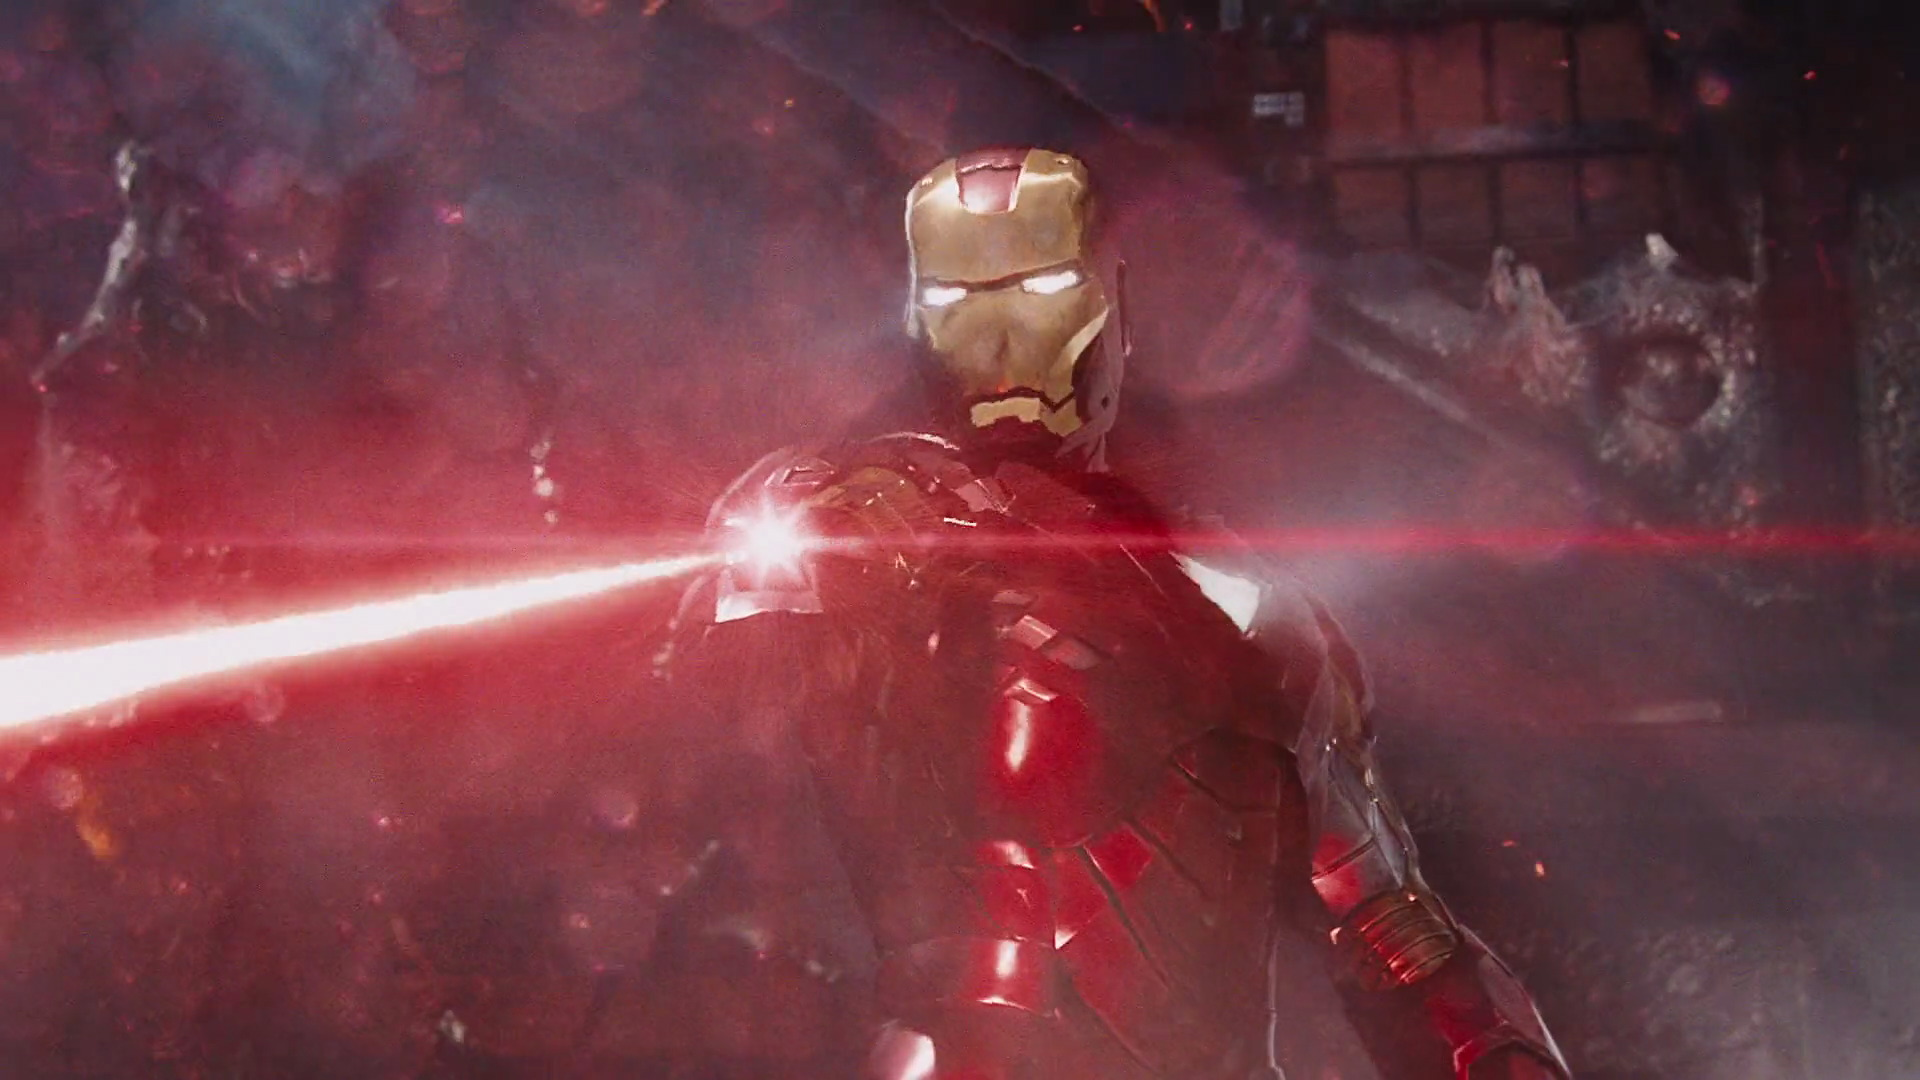 http://www.caps.media/201/2-avengers/full/avengers-movie-screencaps.com-9580.jpg